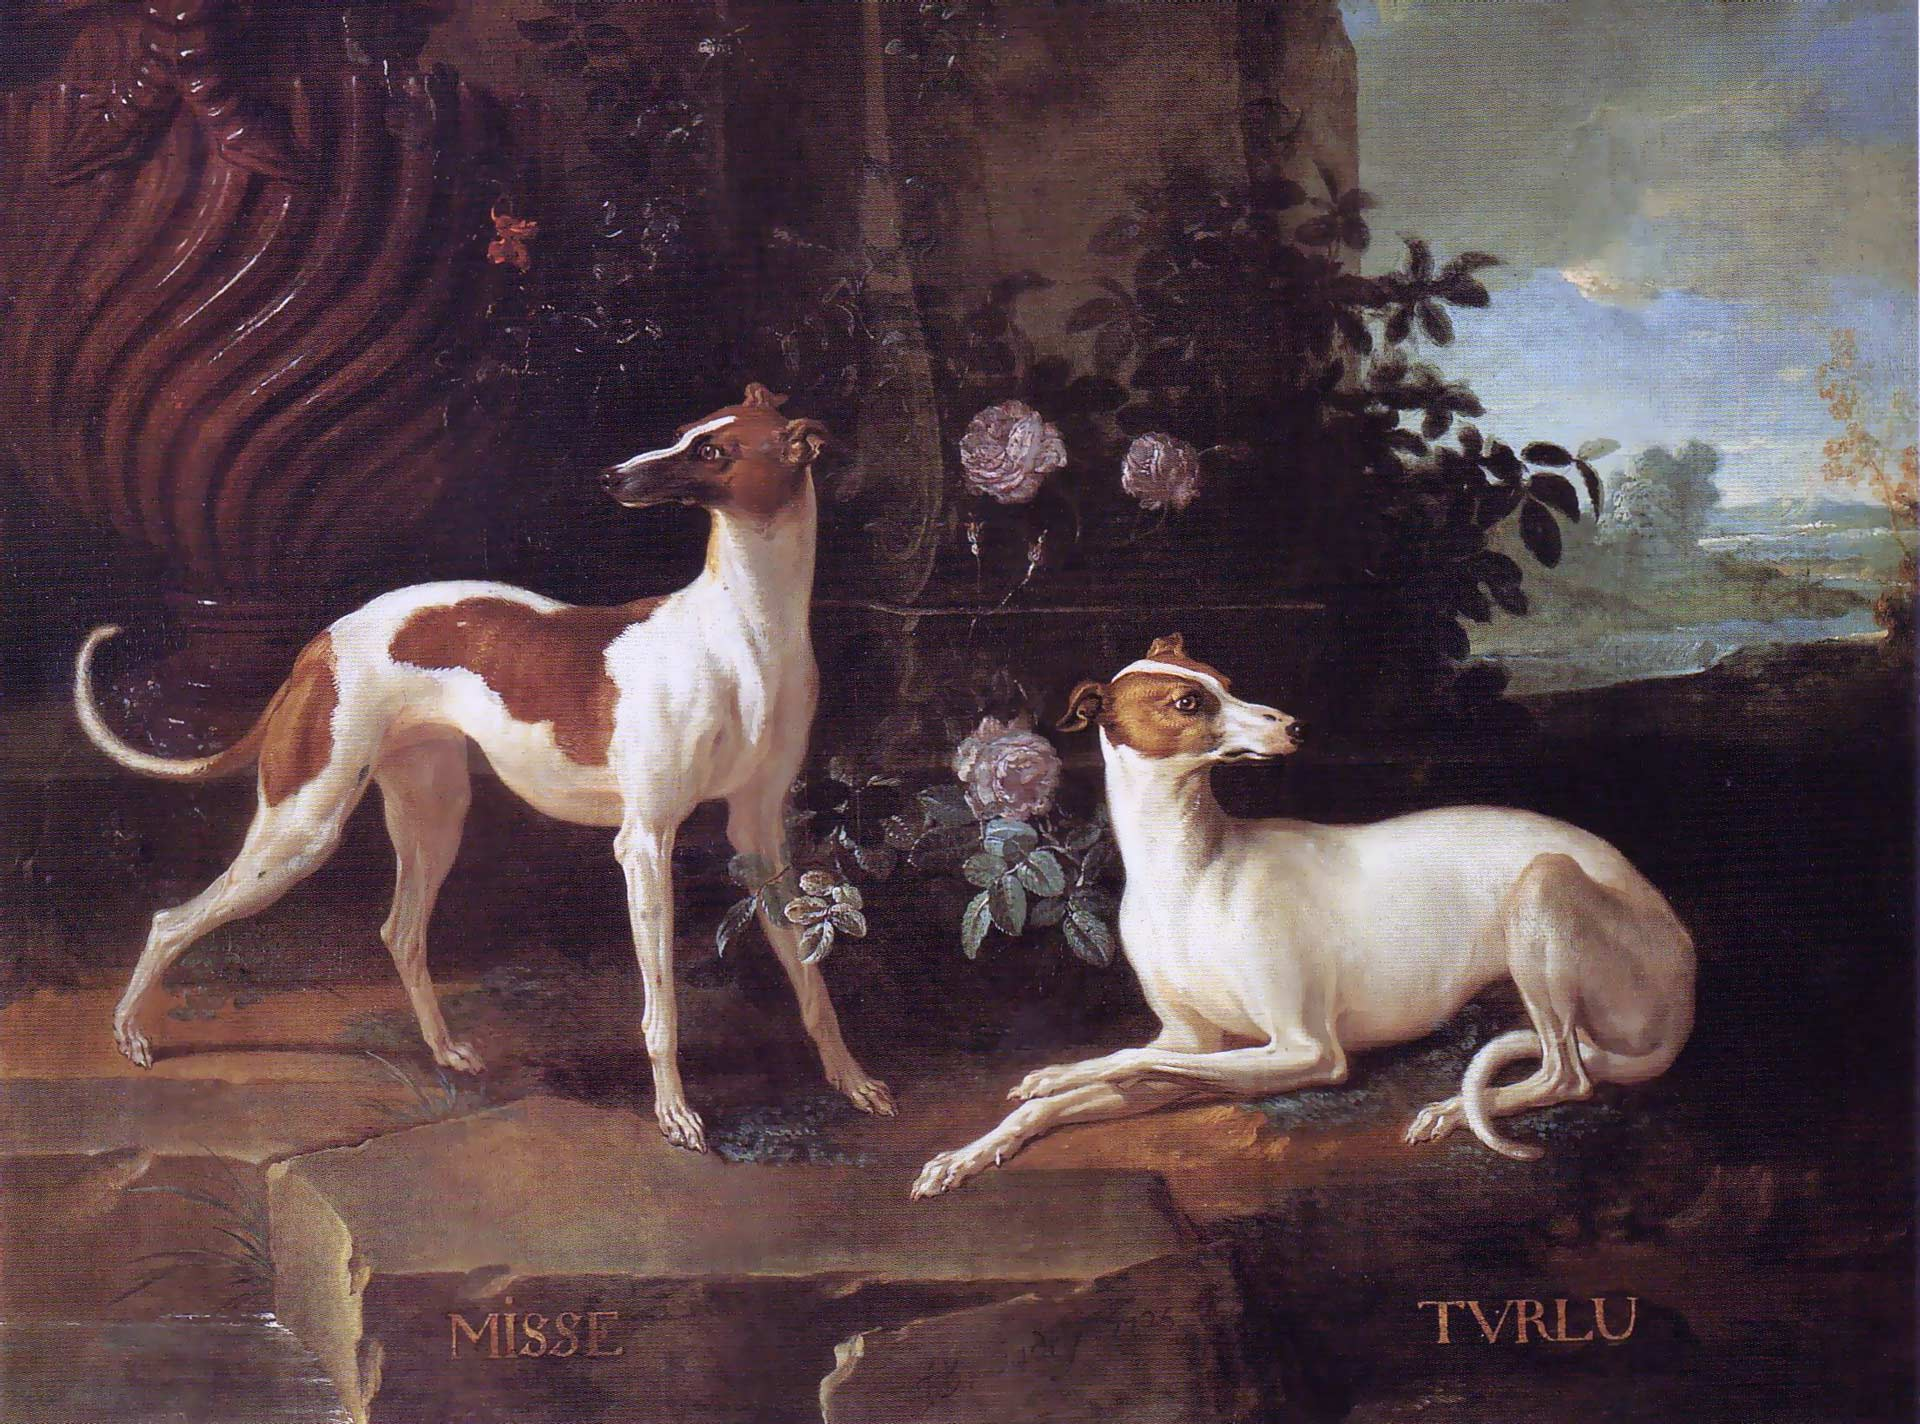 Misse and Turlu, Two Greyhounds Belonging to Louis XV by Jean-Batiste Oudry